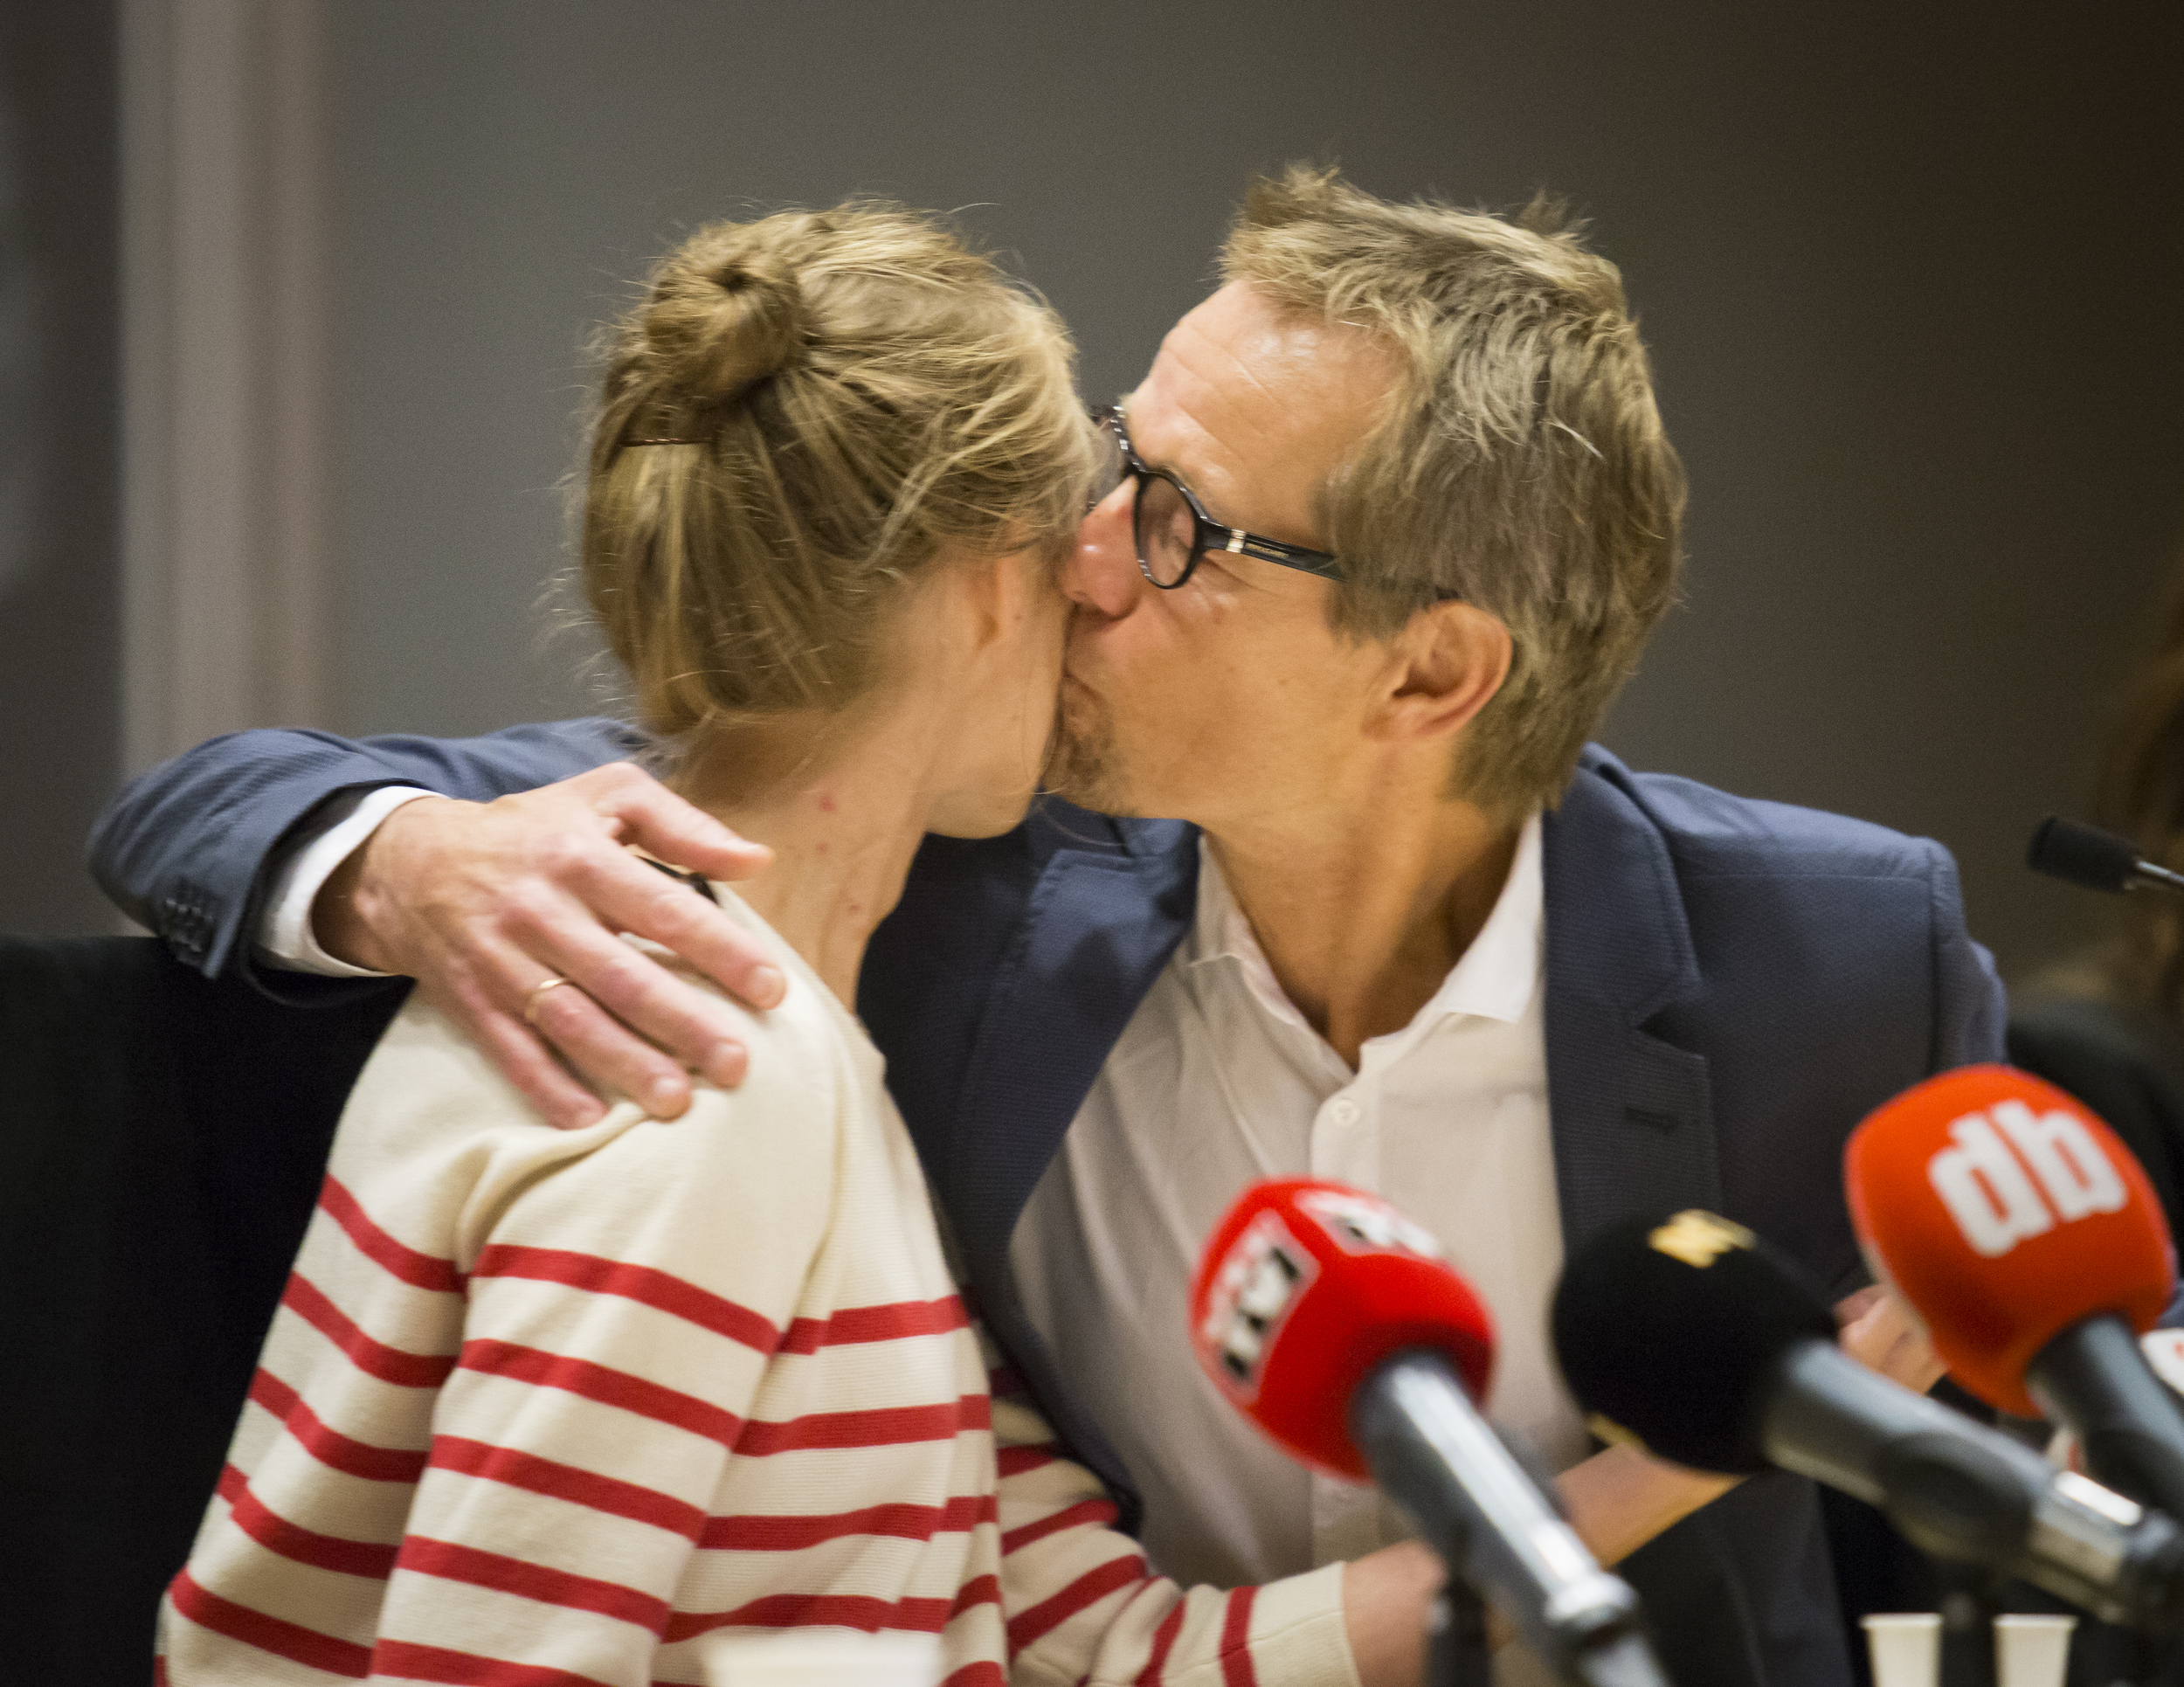 Silje Lehne Michalsen gets a kiss from her father after she has recovered from Ebola